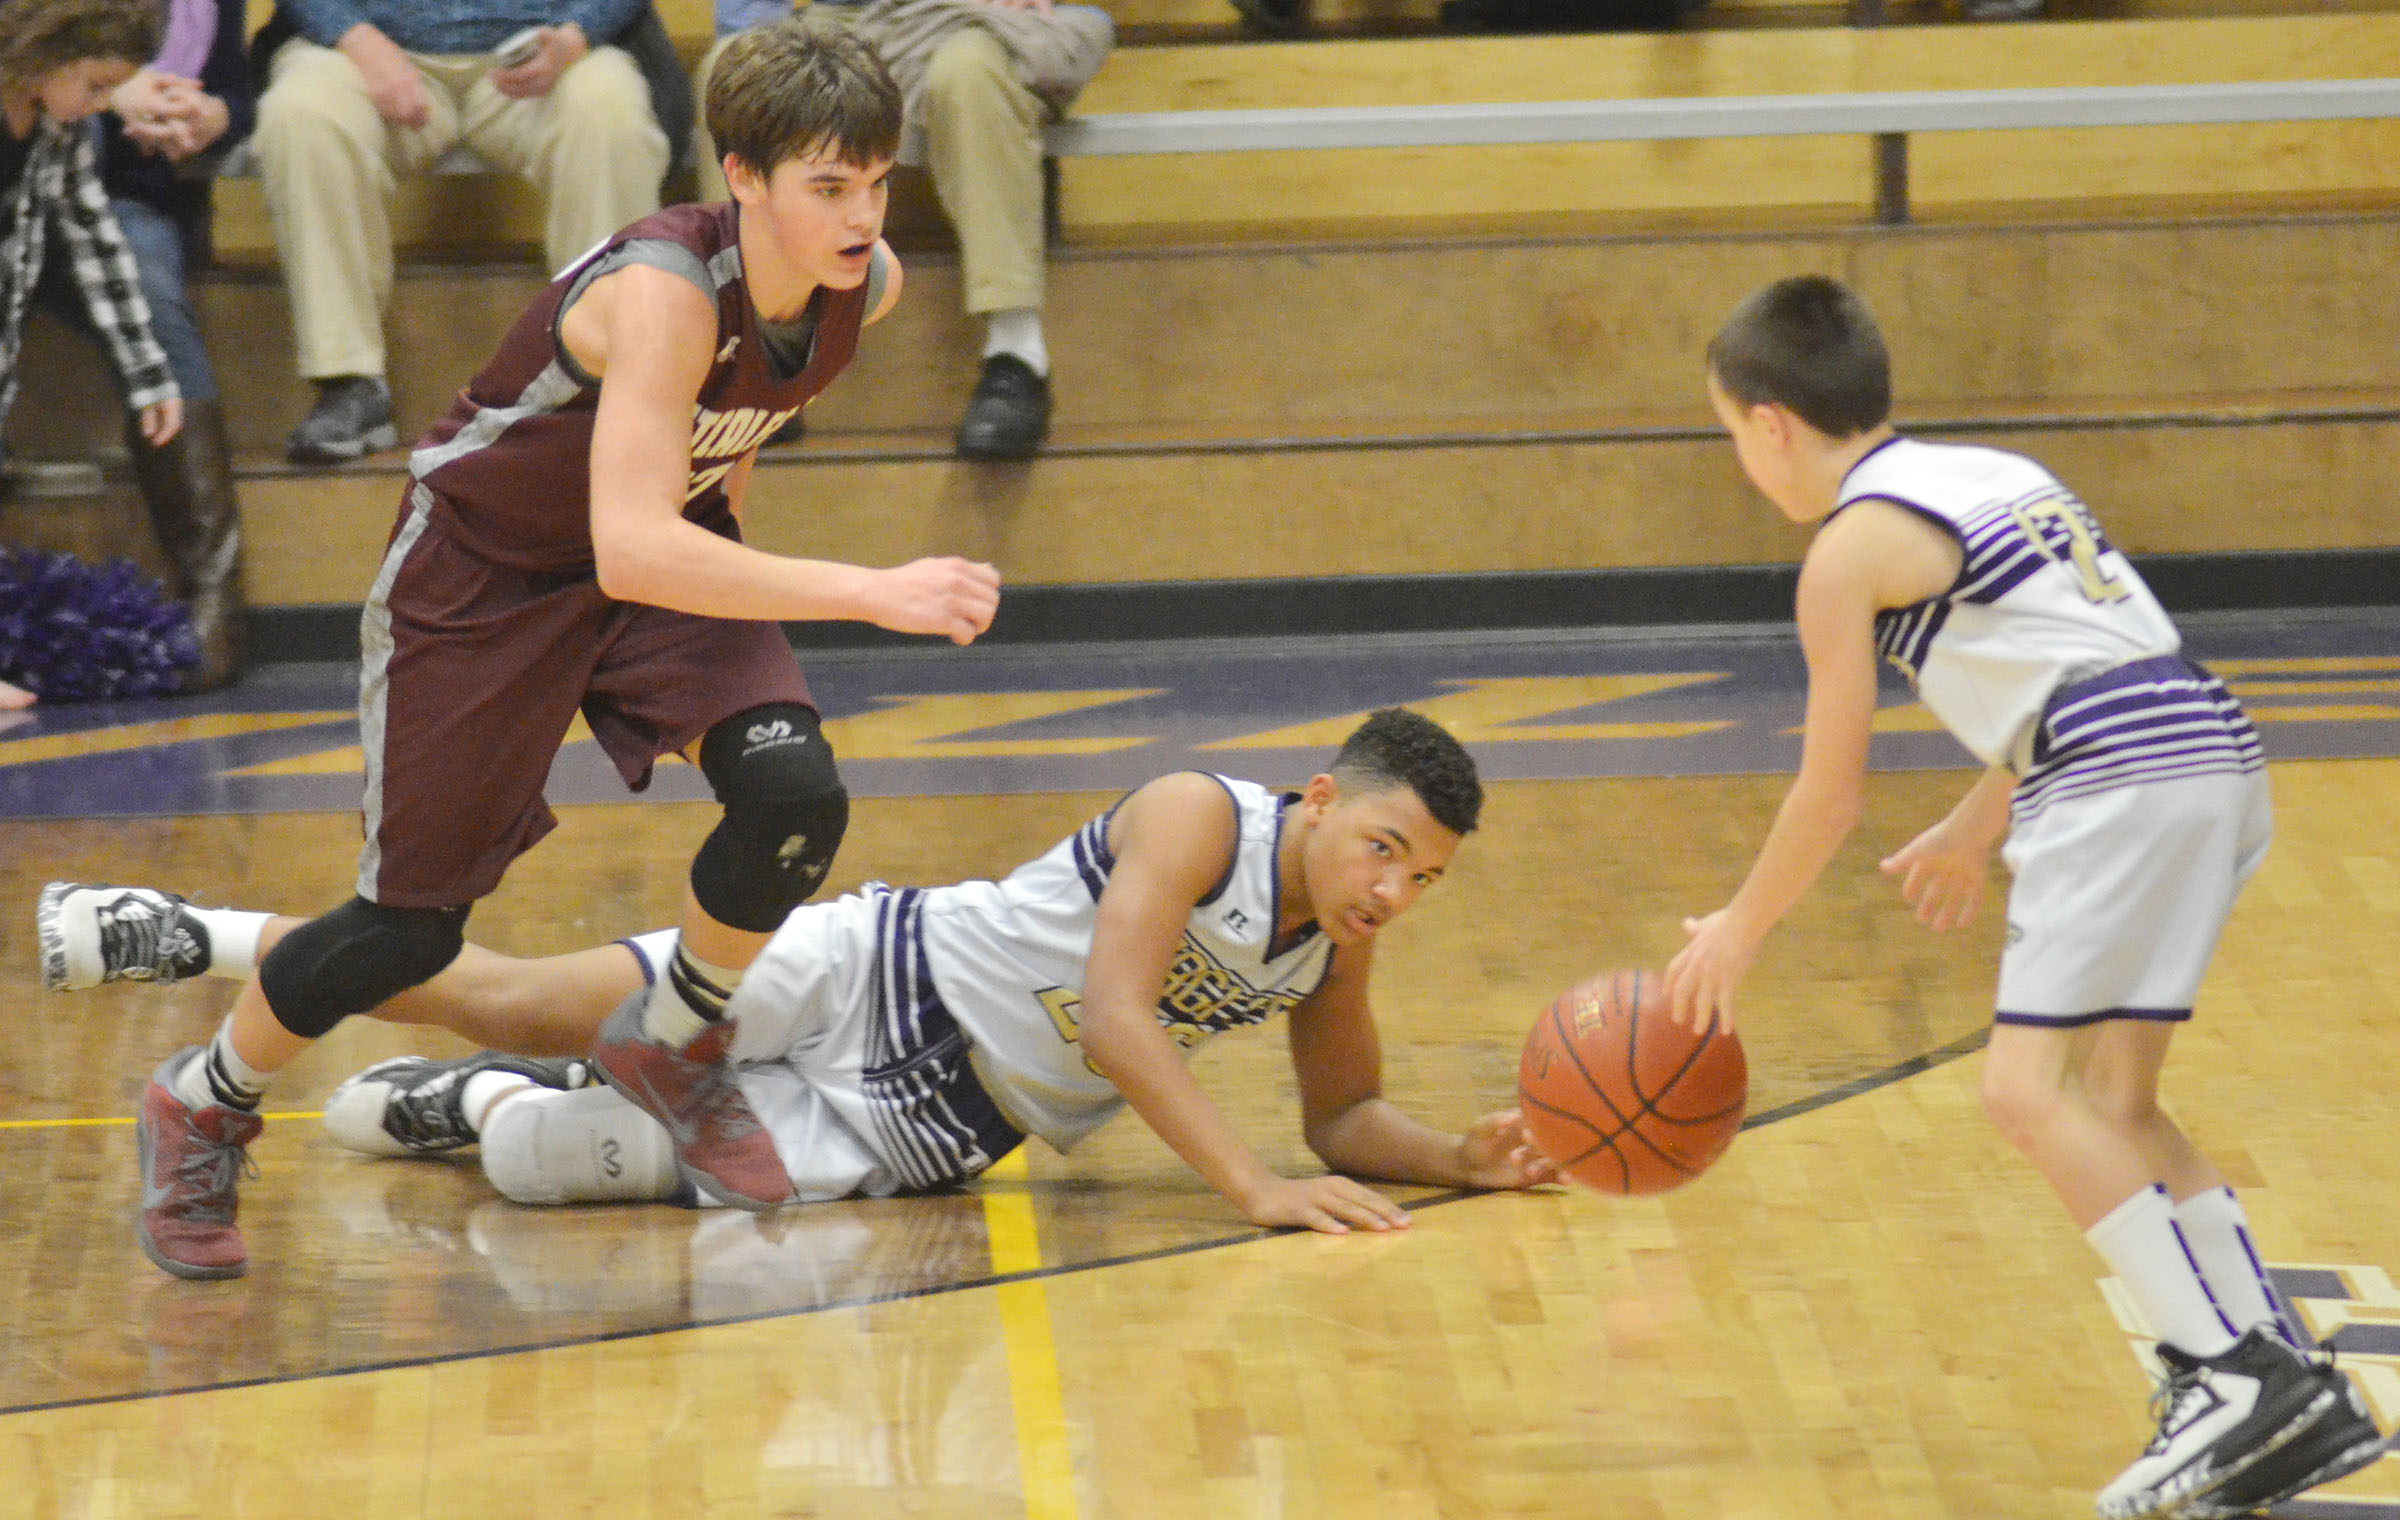 CMS eighth-grader Reggie Thomas passes the ball to sixth-grader Chase Hord.